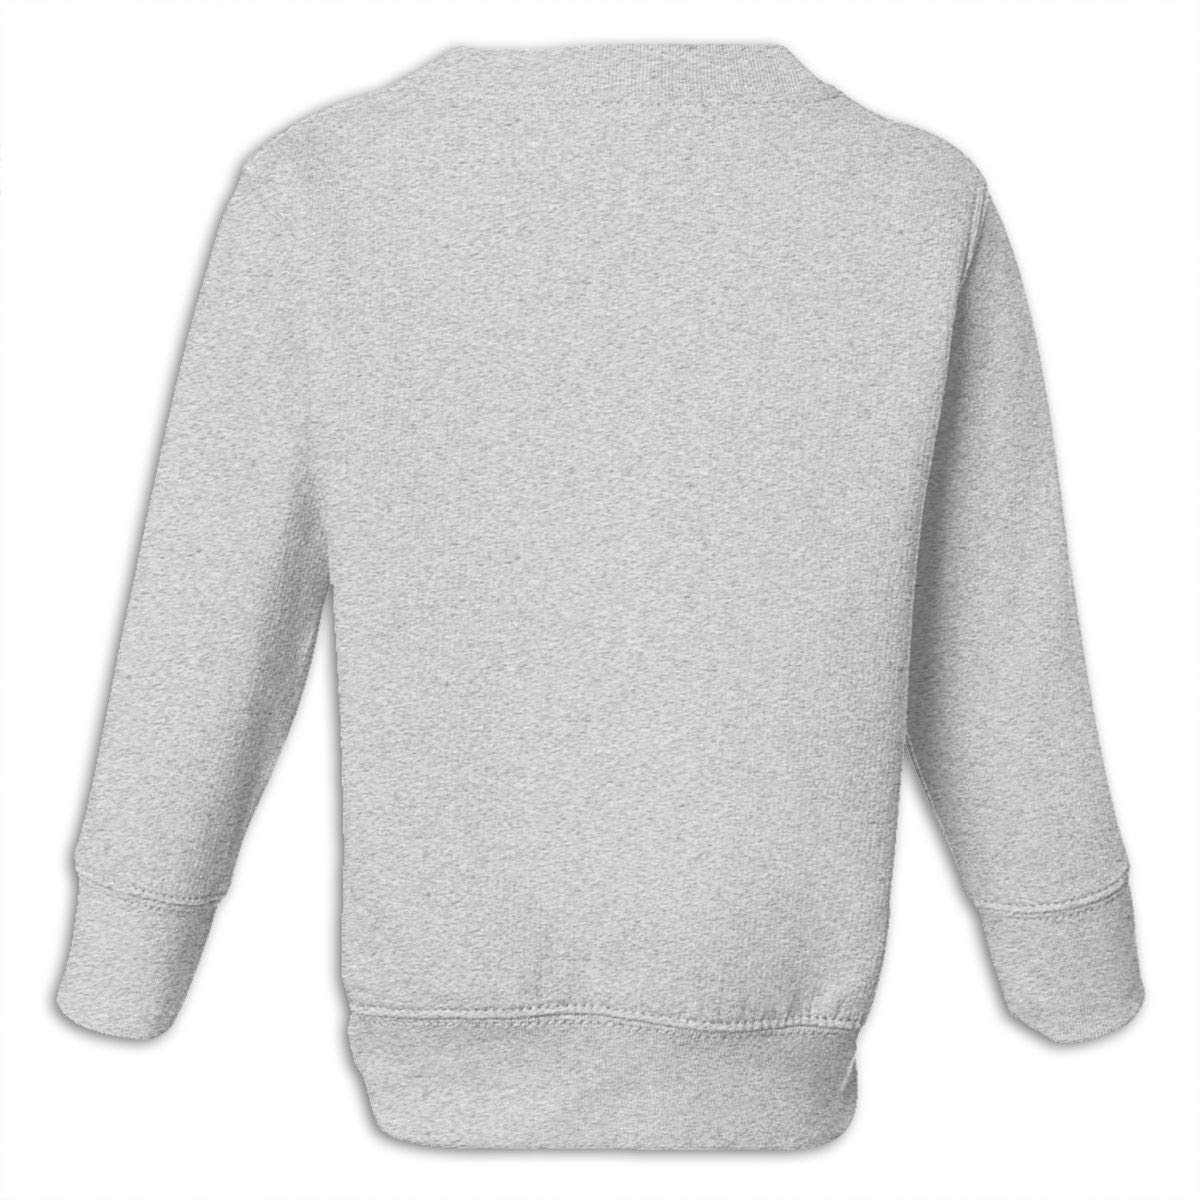 Yuliang Sorry Im Late I Didnt Want to Come Children Personality Sweater Gray